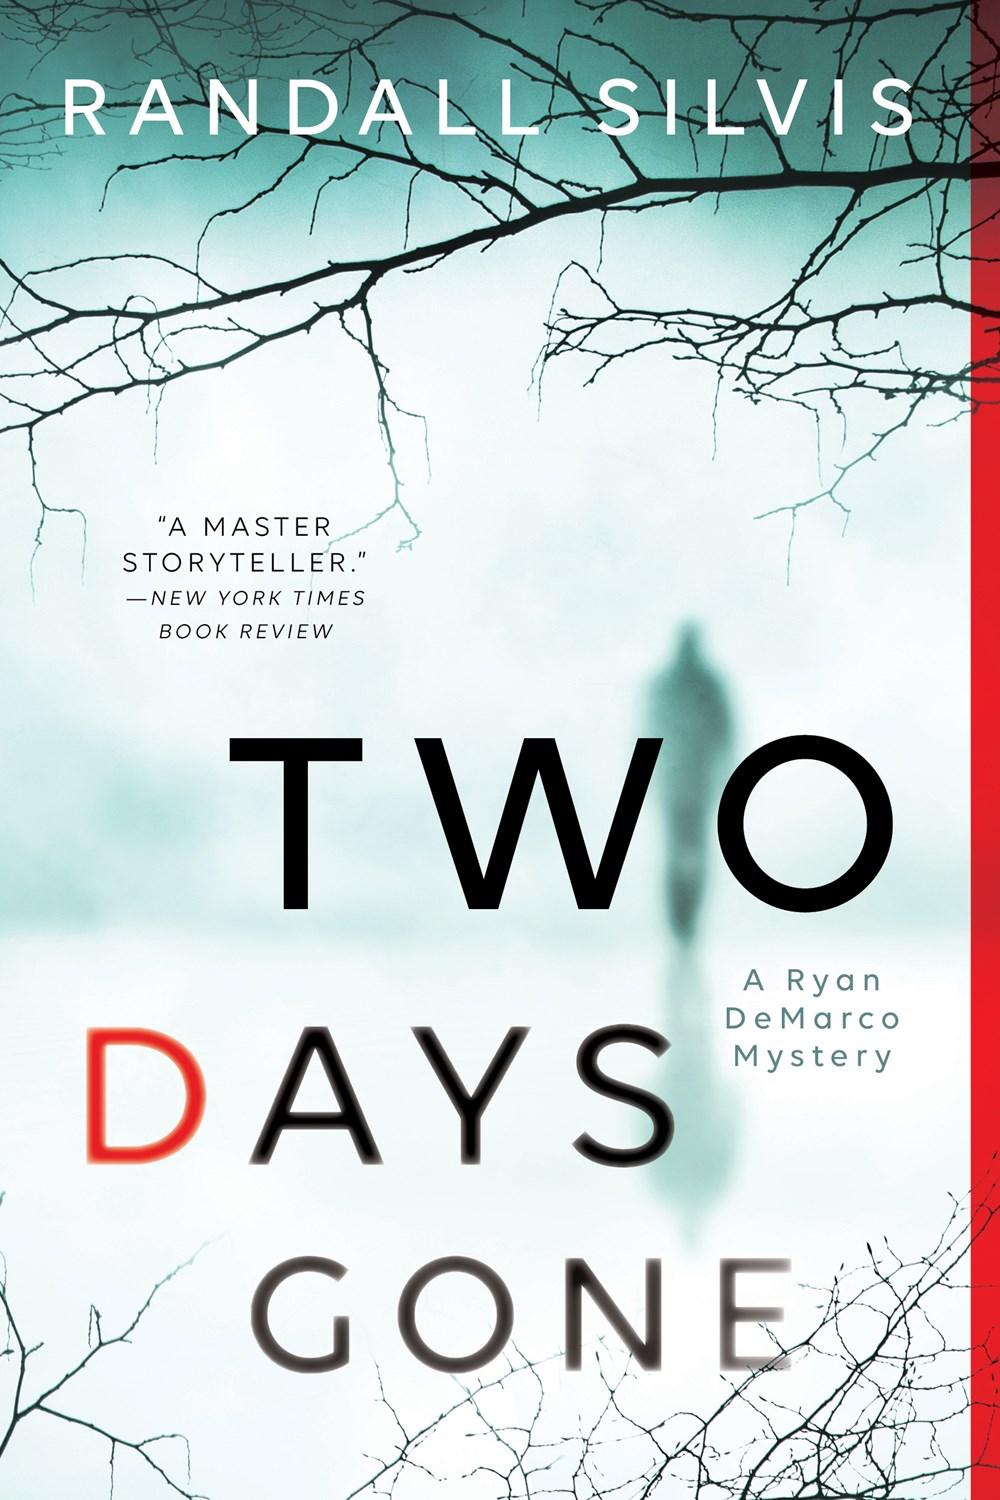 Book Review: Two Days Gone - Erie Reader